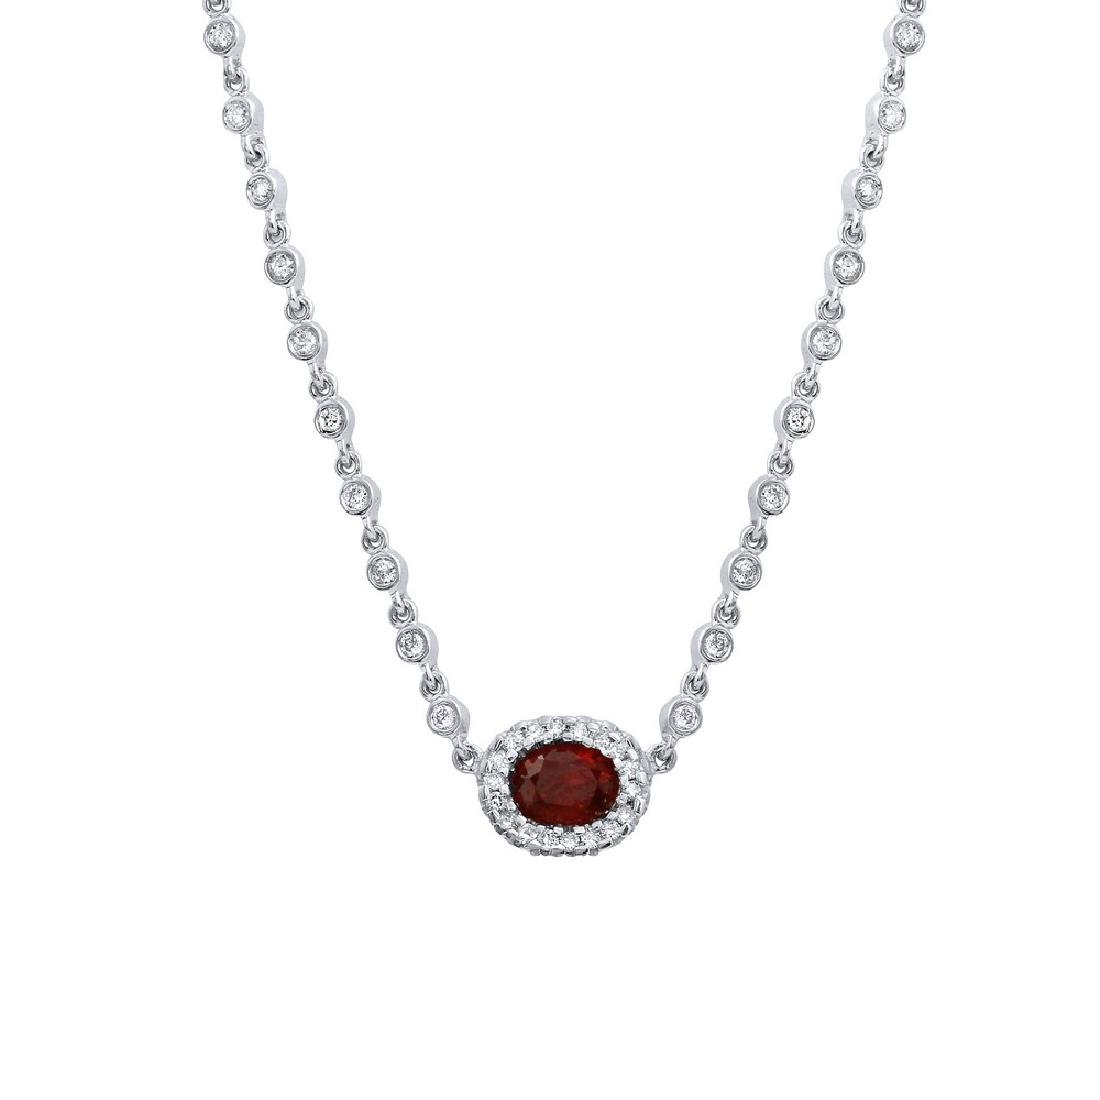 2.65 CTW Diamond Chain  Necklace in 14K White Gold